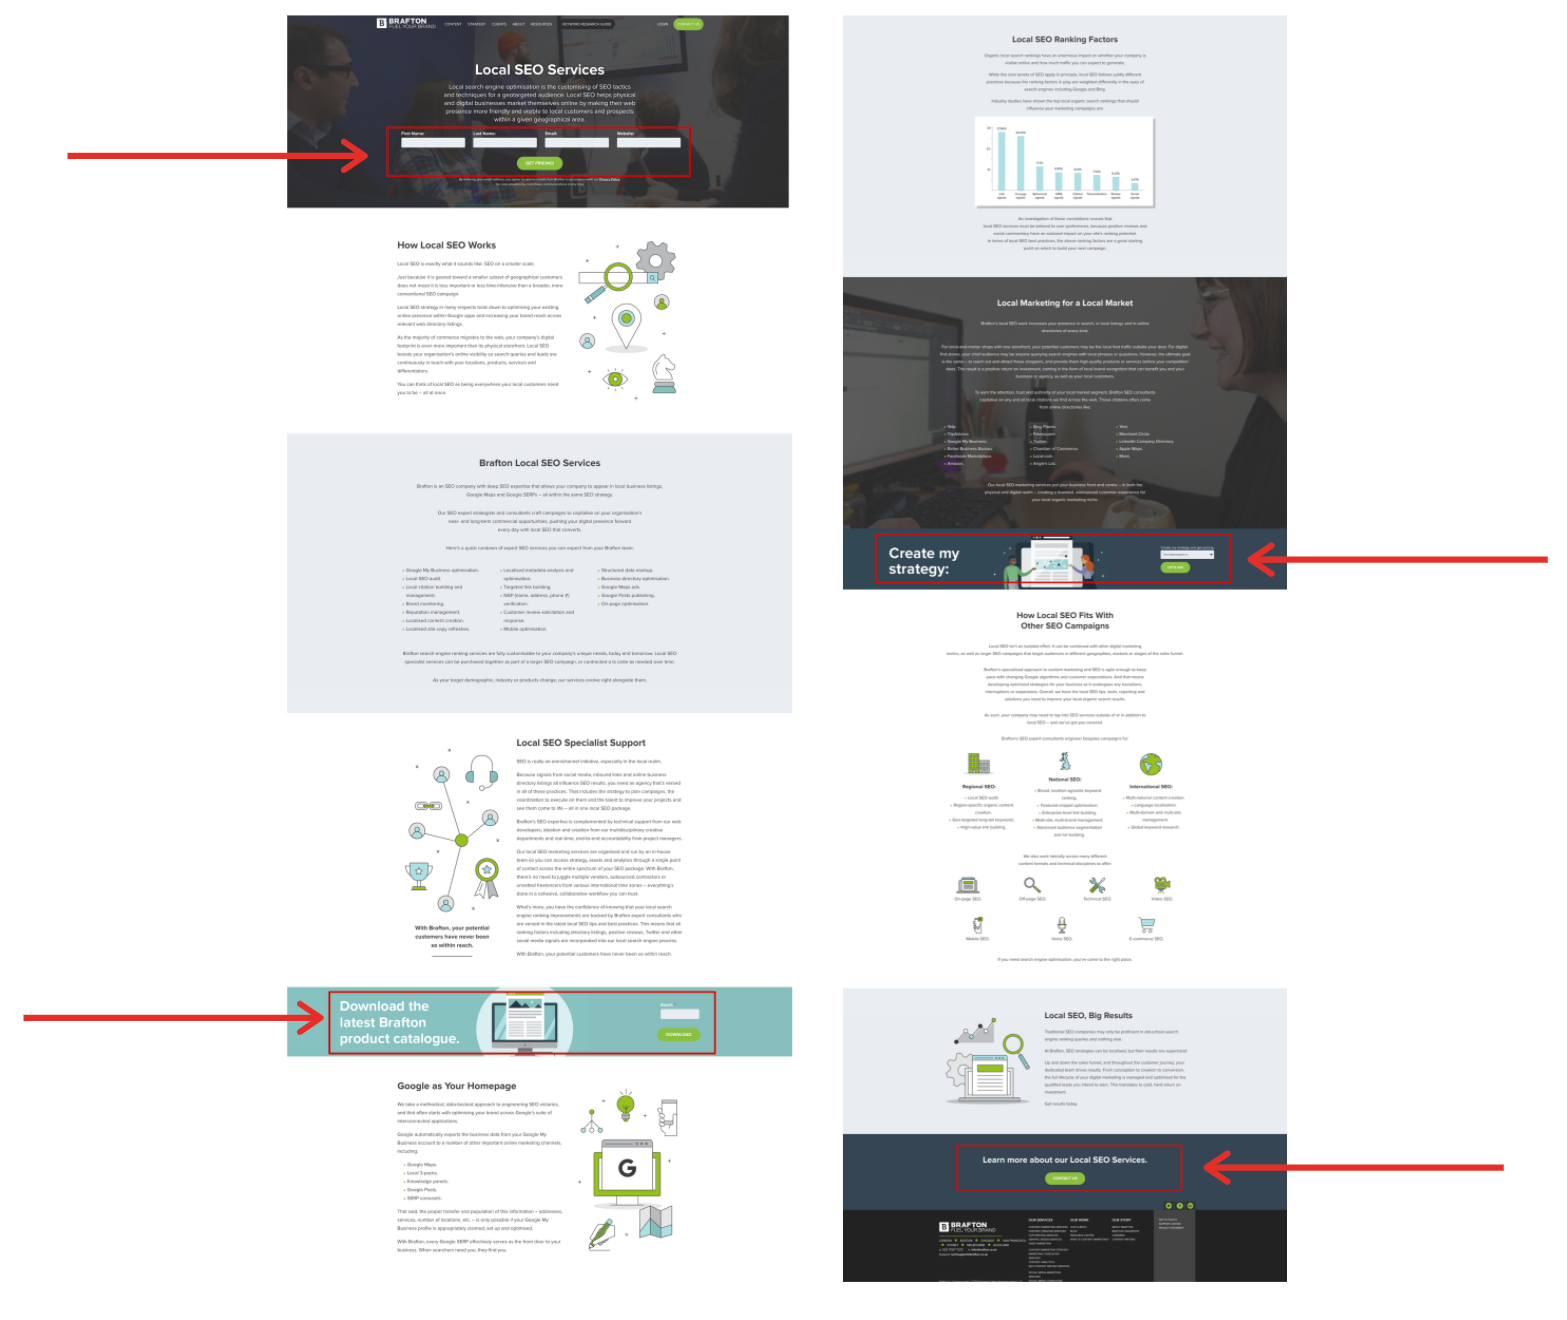 Content marketing guides and CTAs